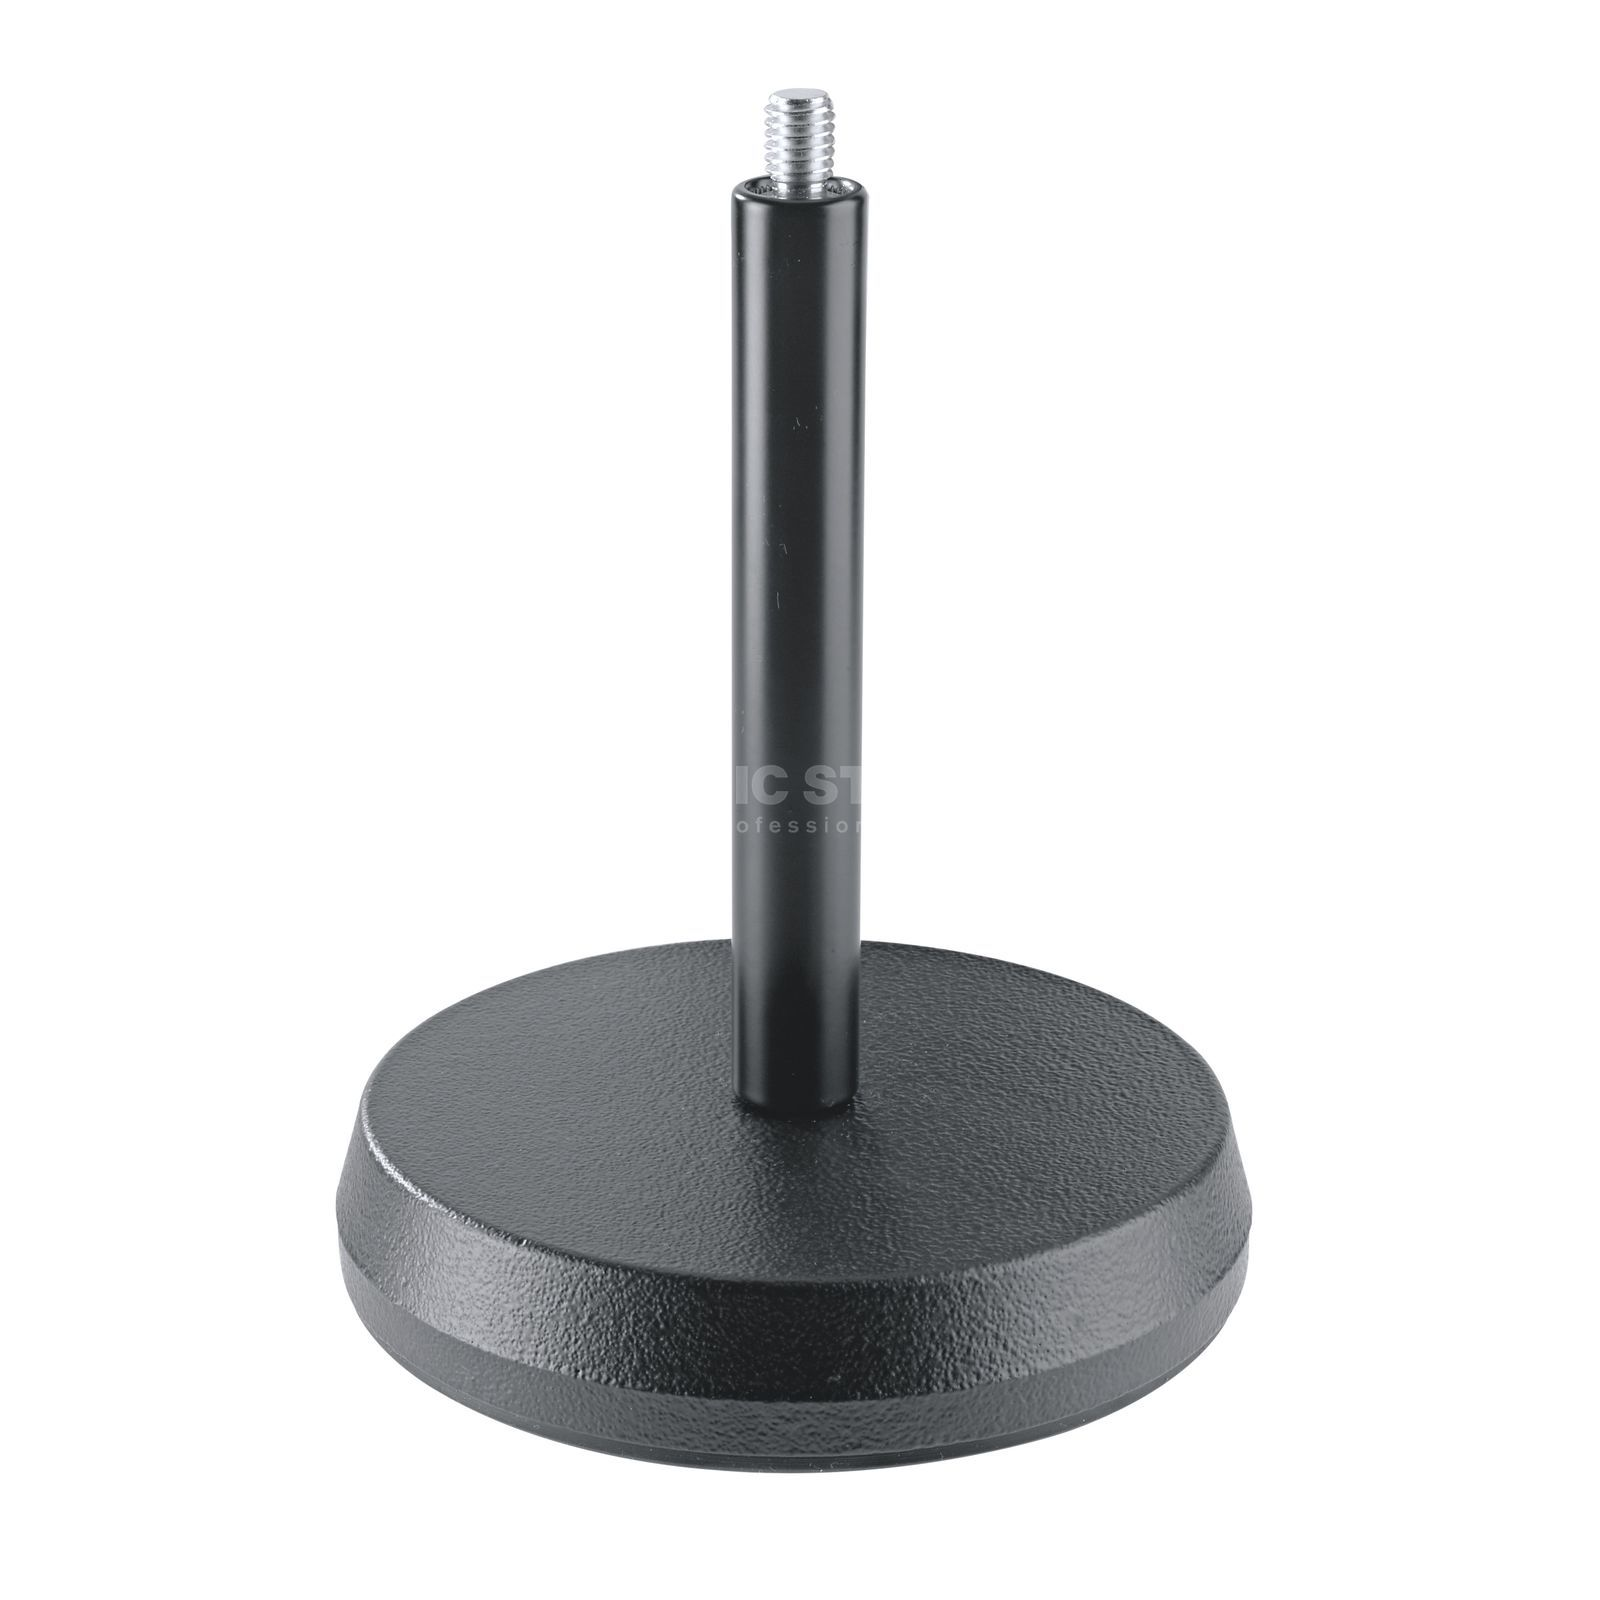 König & Meyer 232 Tabletop Microphone Stand black Product Image